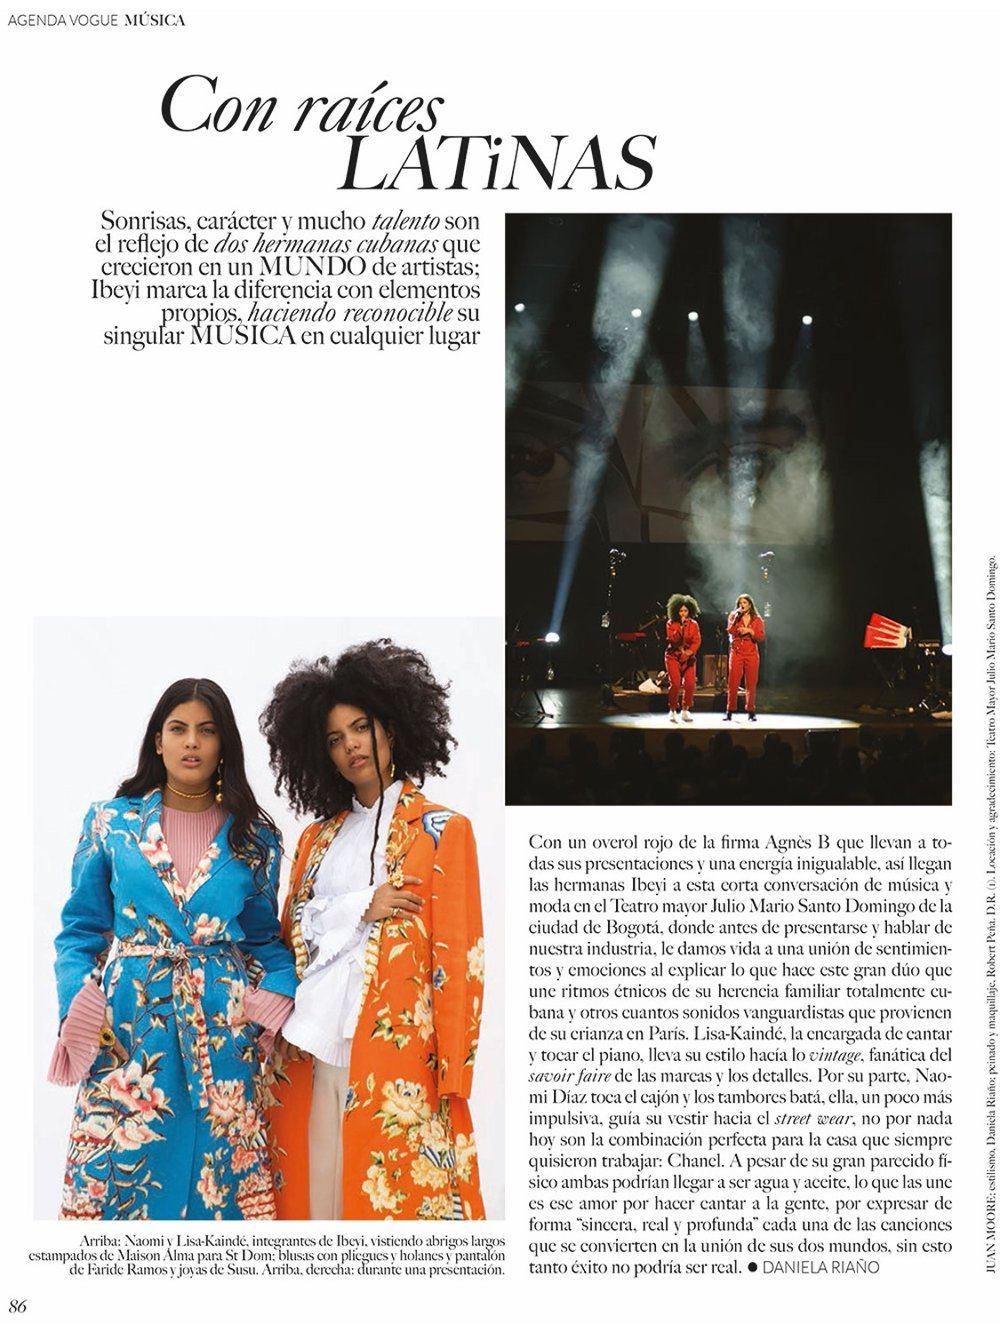 VOGUE Febrero 2018 - raices latinas.jpg